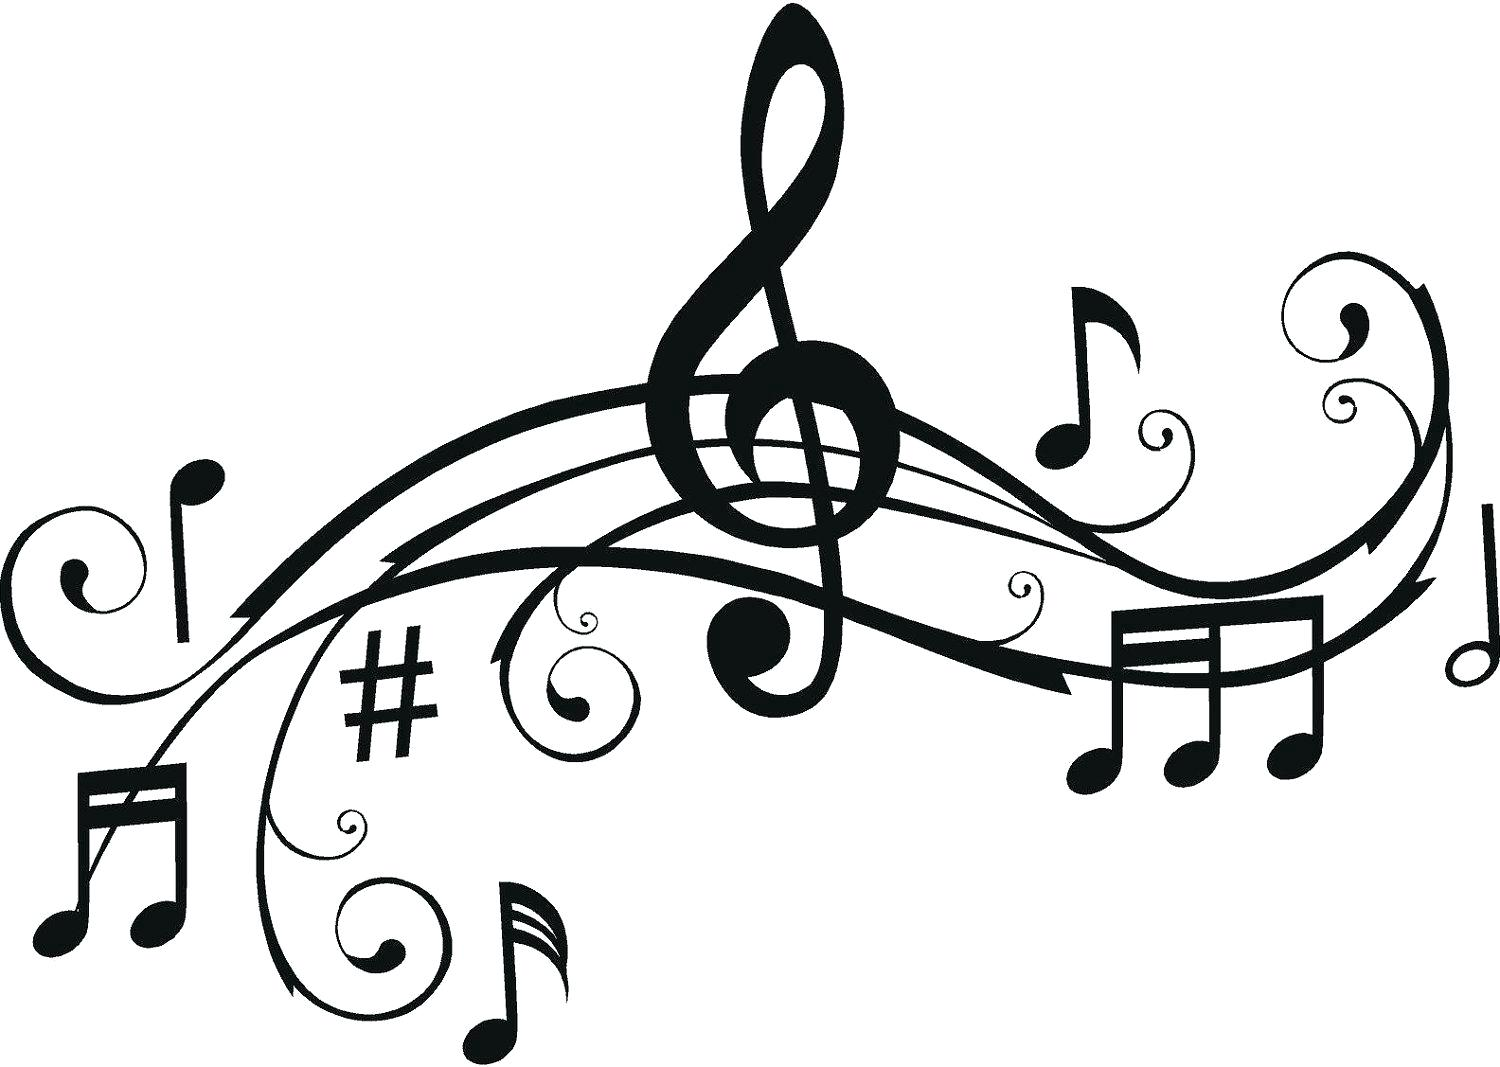 1500x1067 Coloring Pages For Adults Flowers Treble Clef Template And Bass